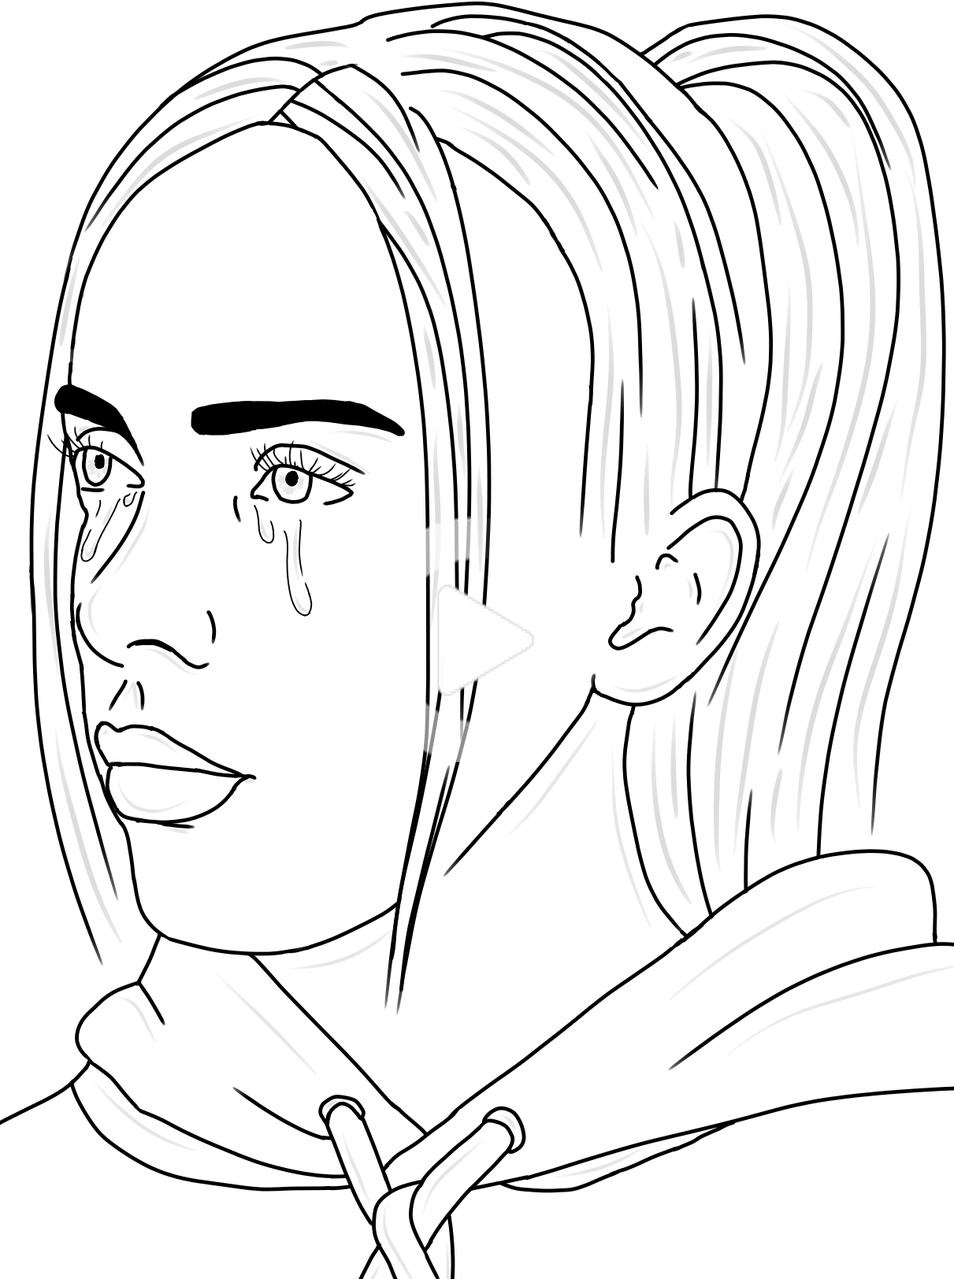 When The Party S Over Billie Eilish Emilyisntok Illustrations Art Street By Mediba Celebrity Art Drawings Art Drawings Sketches Simple Line Art Drawings